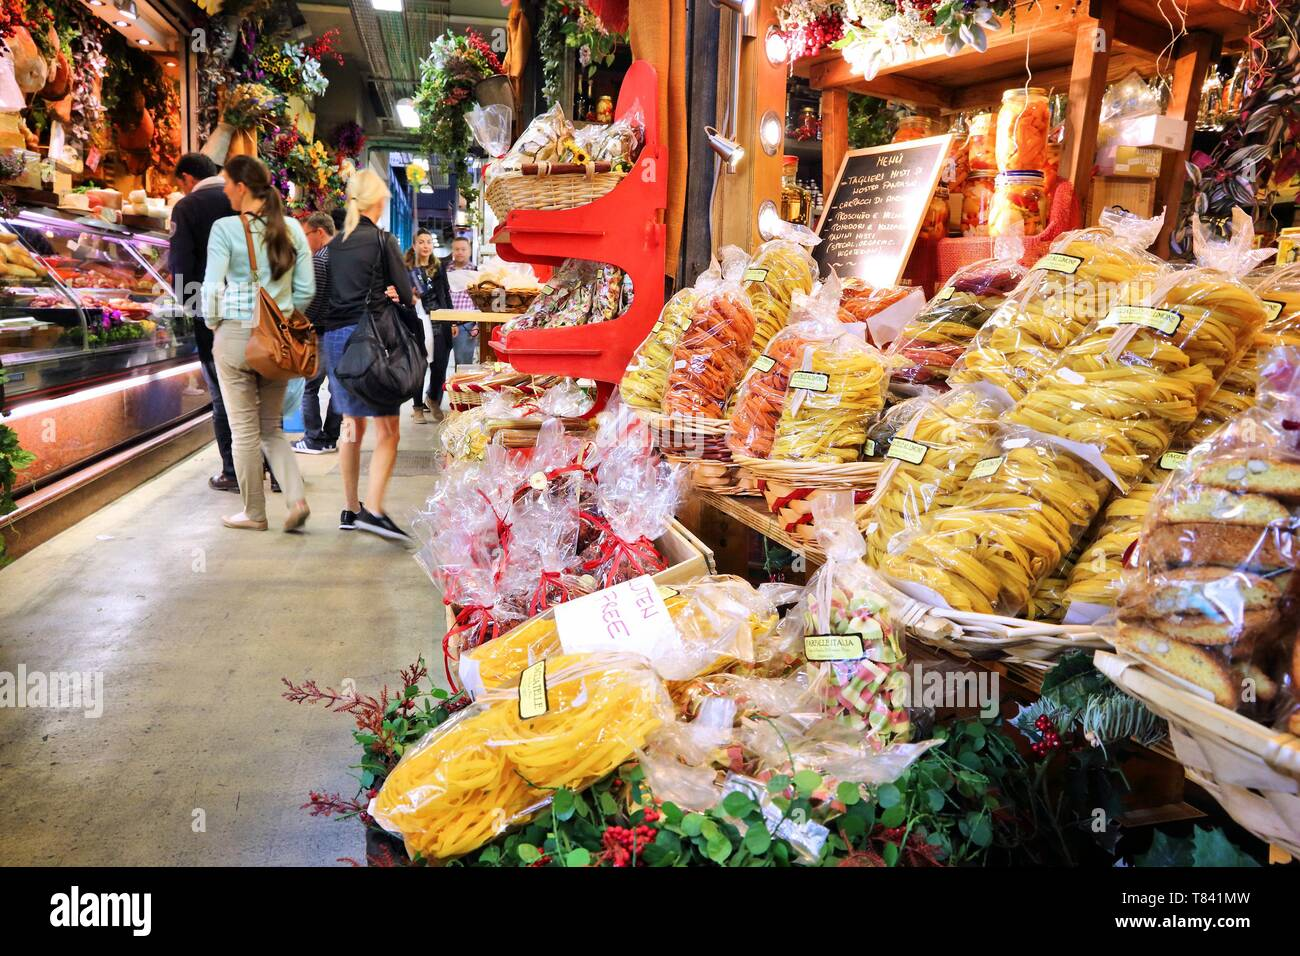 FLORENCE, ITALY - APRIL 30, 2015: People shop at Mercato Centrale market in Florence, Italy. The market is an ultimate Italian shopping experience. It - Stock Image